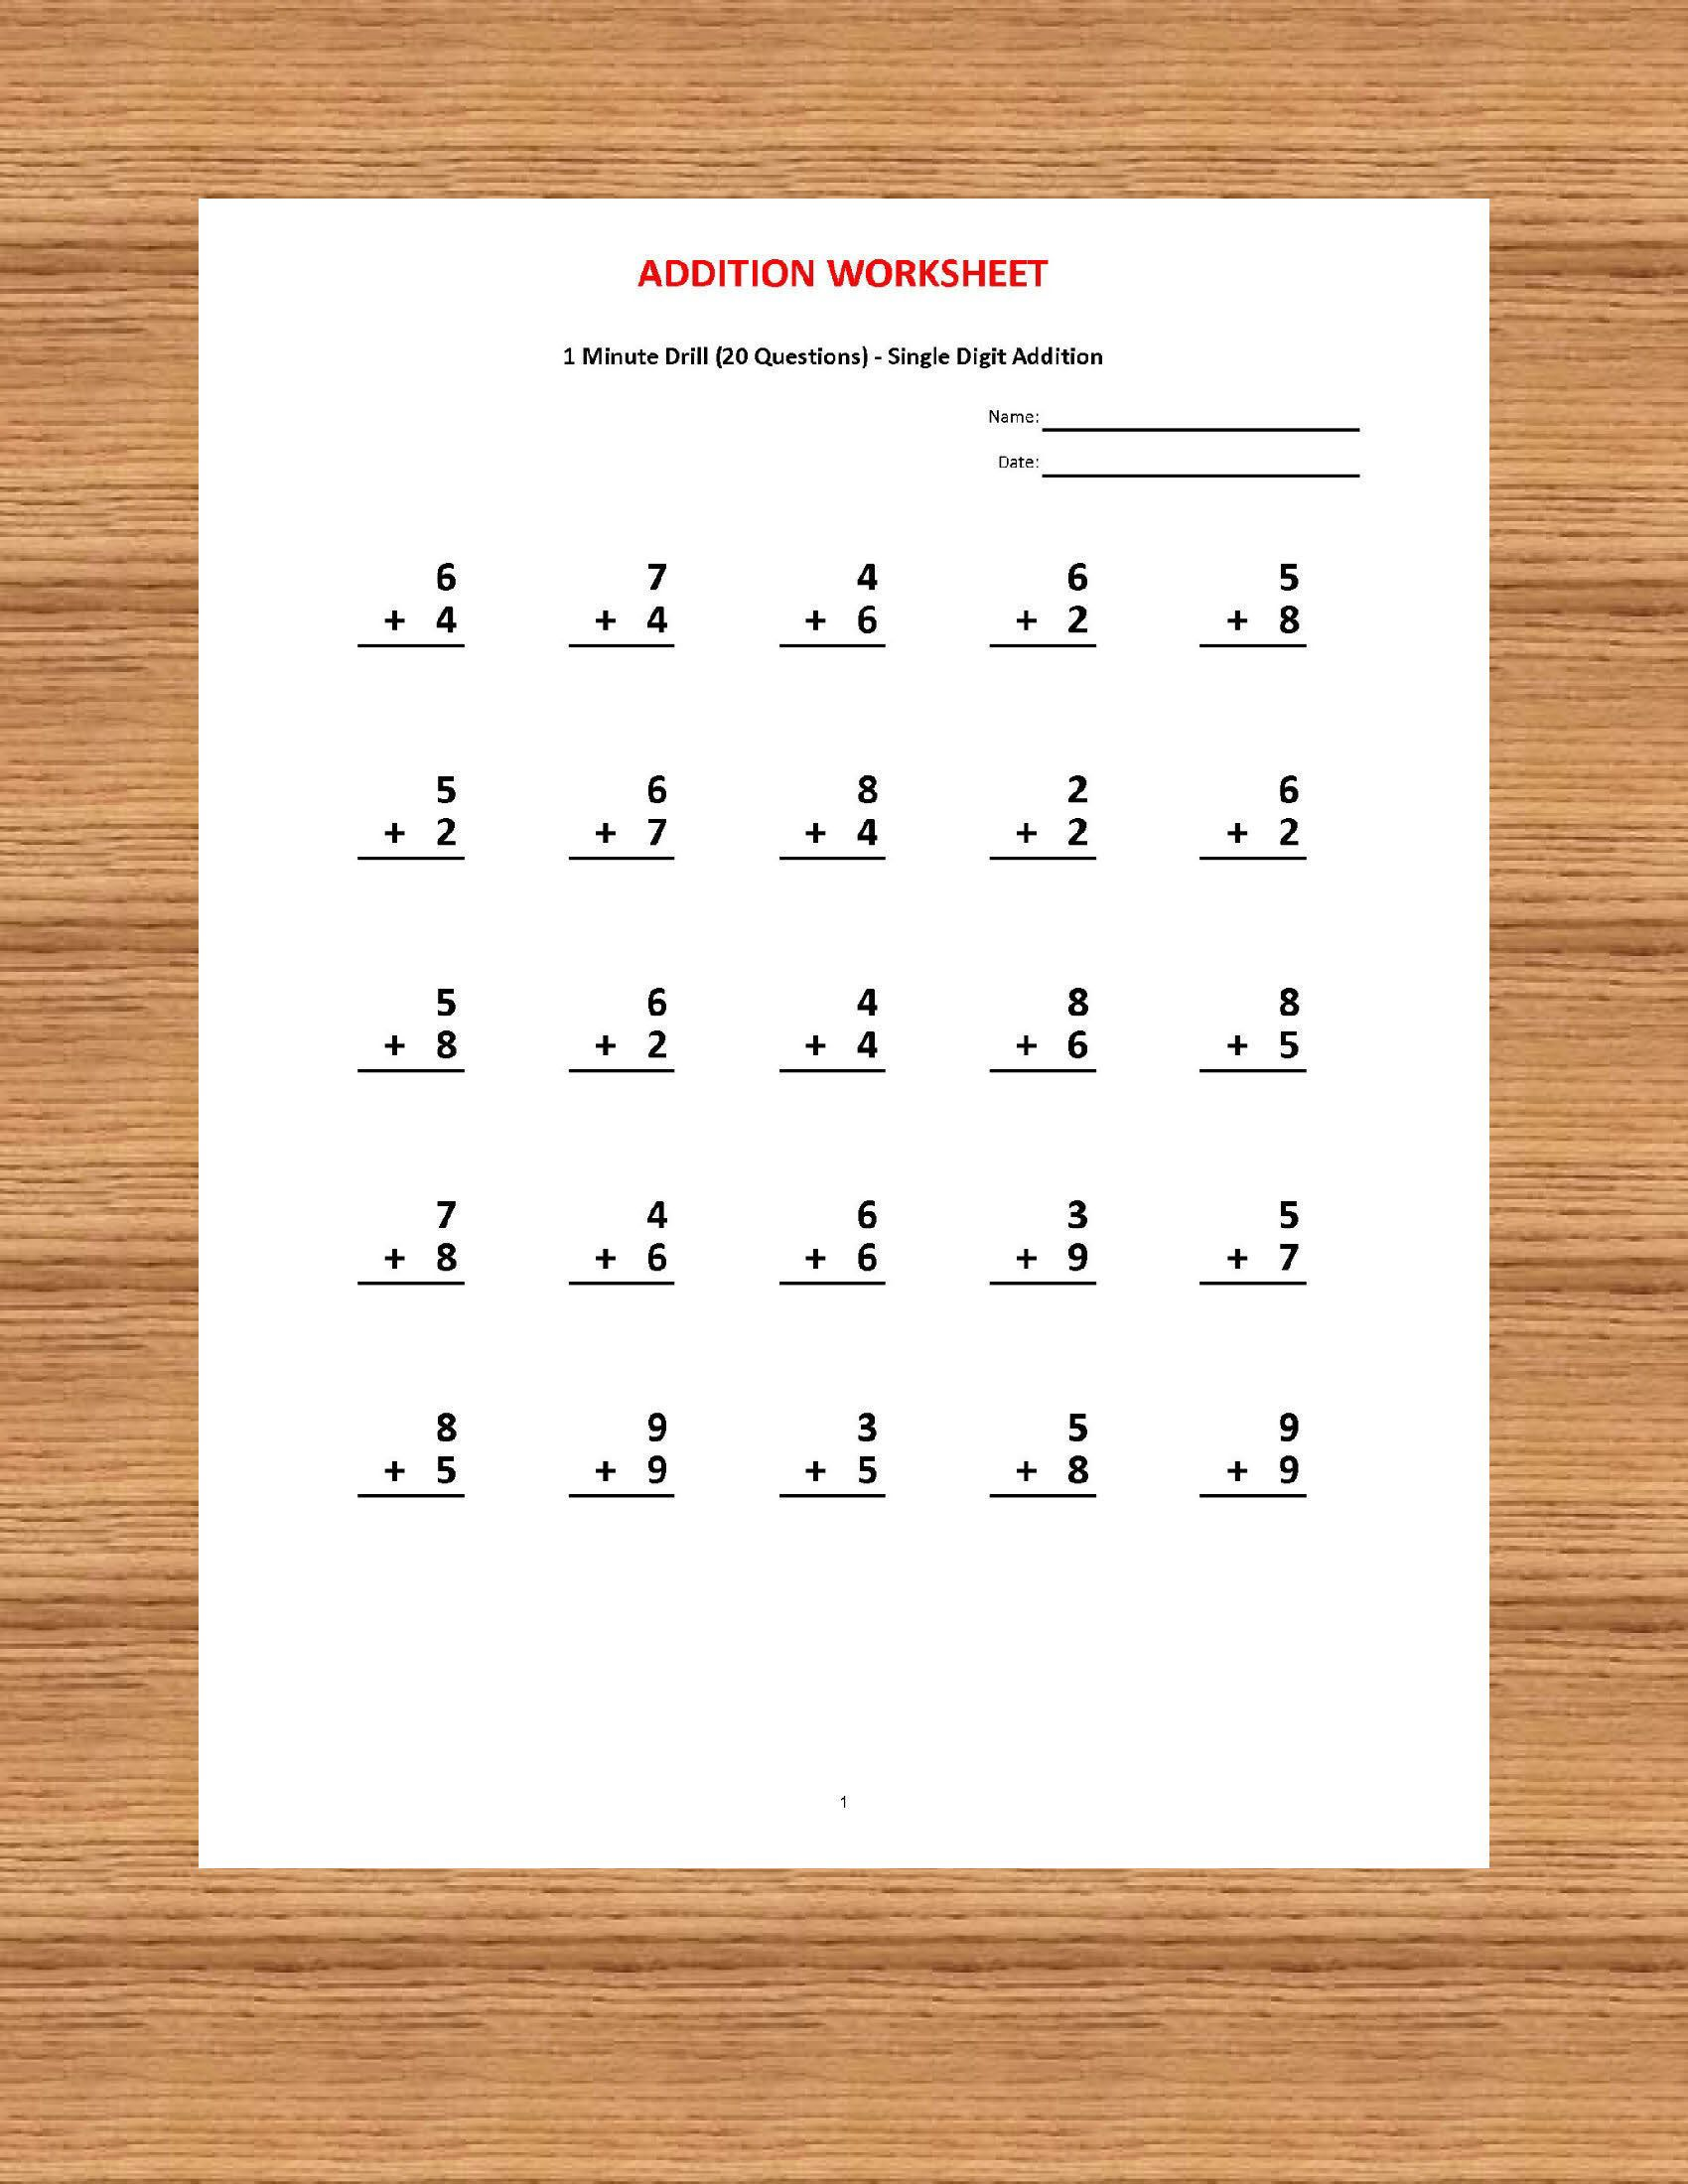 Addition 1 Minute Drill V 10 Math Worksheets With Answers